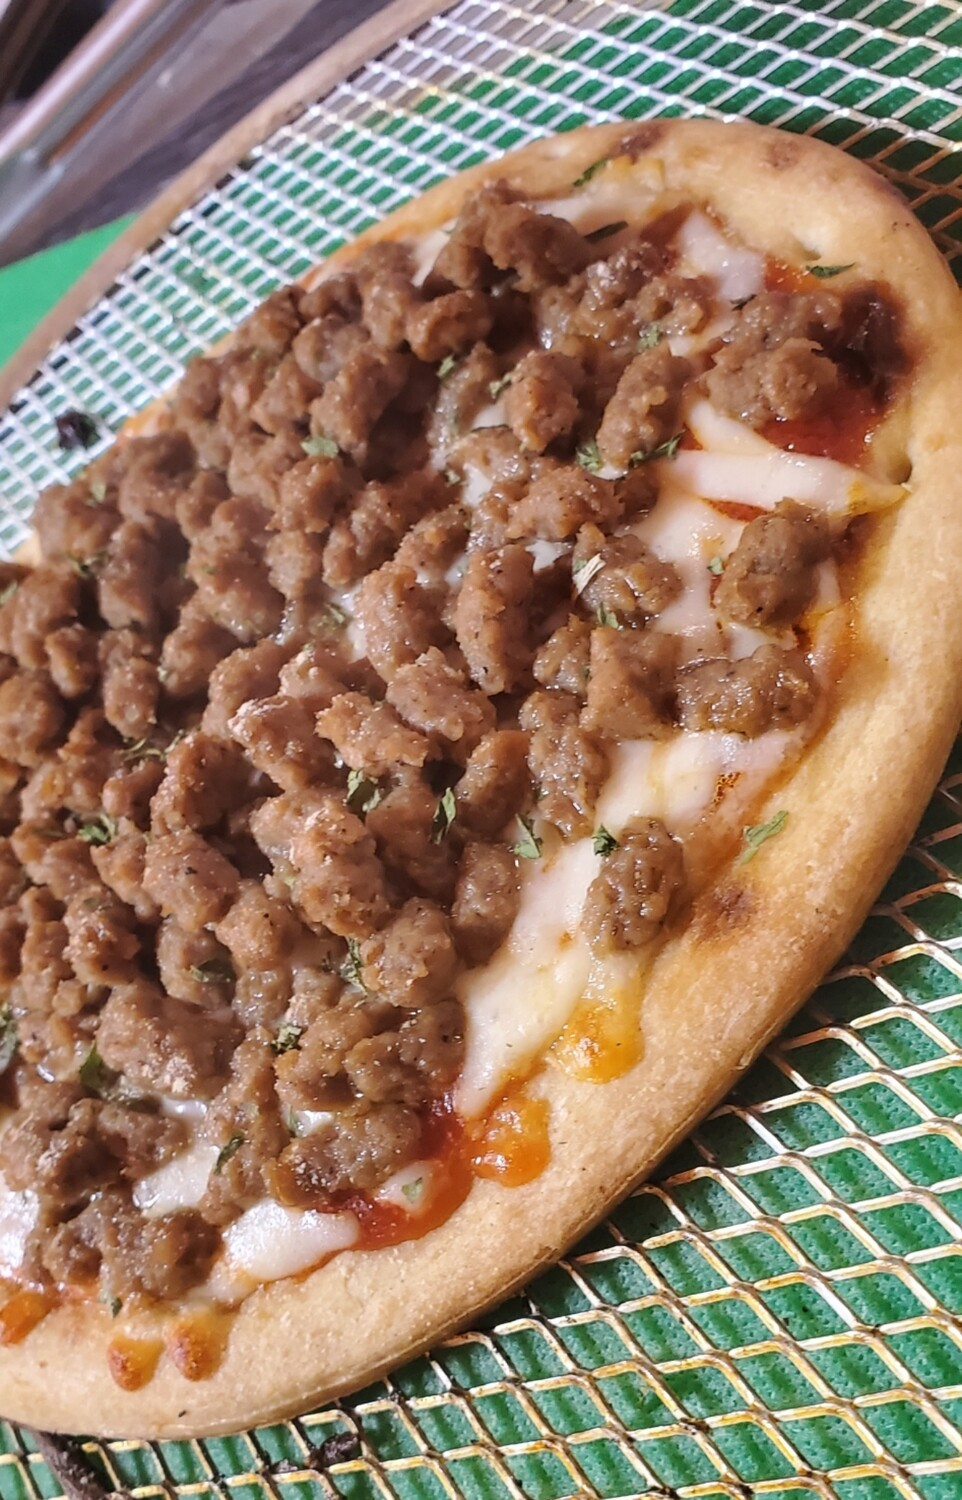 Beef Sausage Pizza